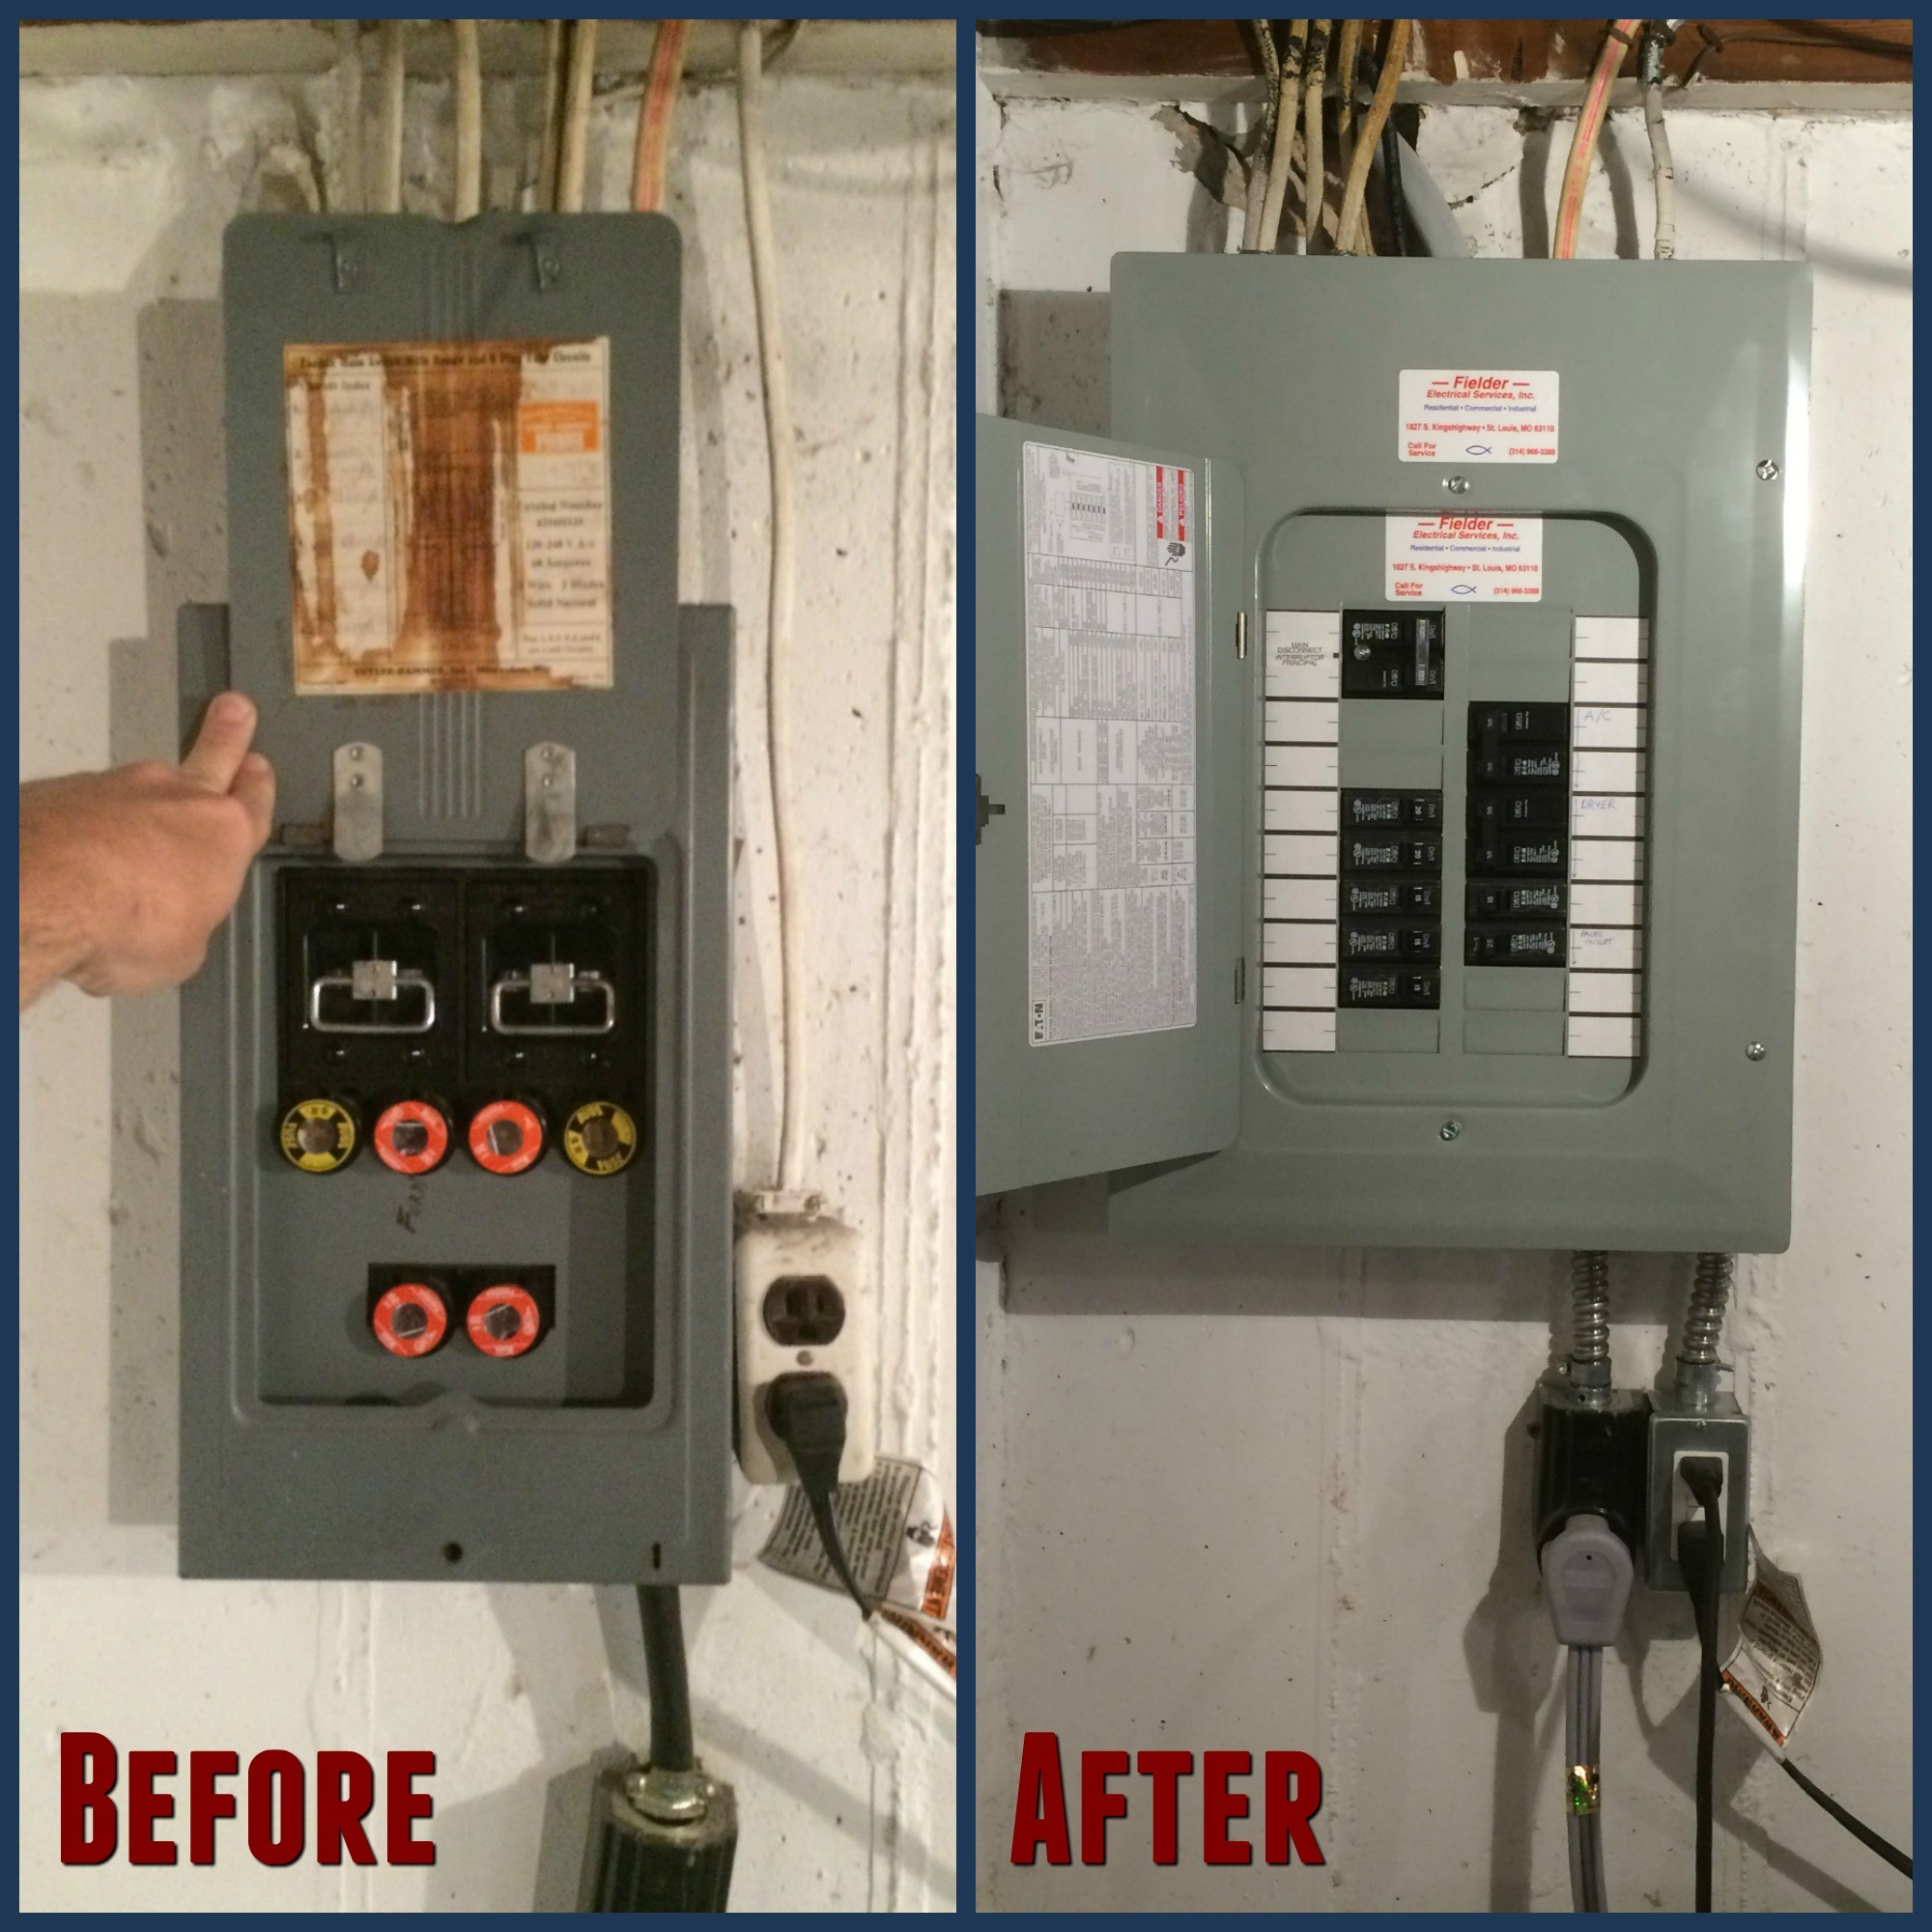 household fuse box wiring diagram electric fuse box lan1 repeat18 klictravel nl  electric fuse box lan1 repeat18